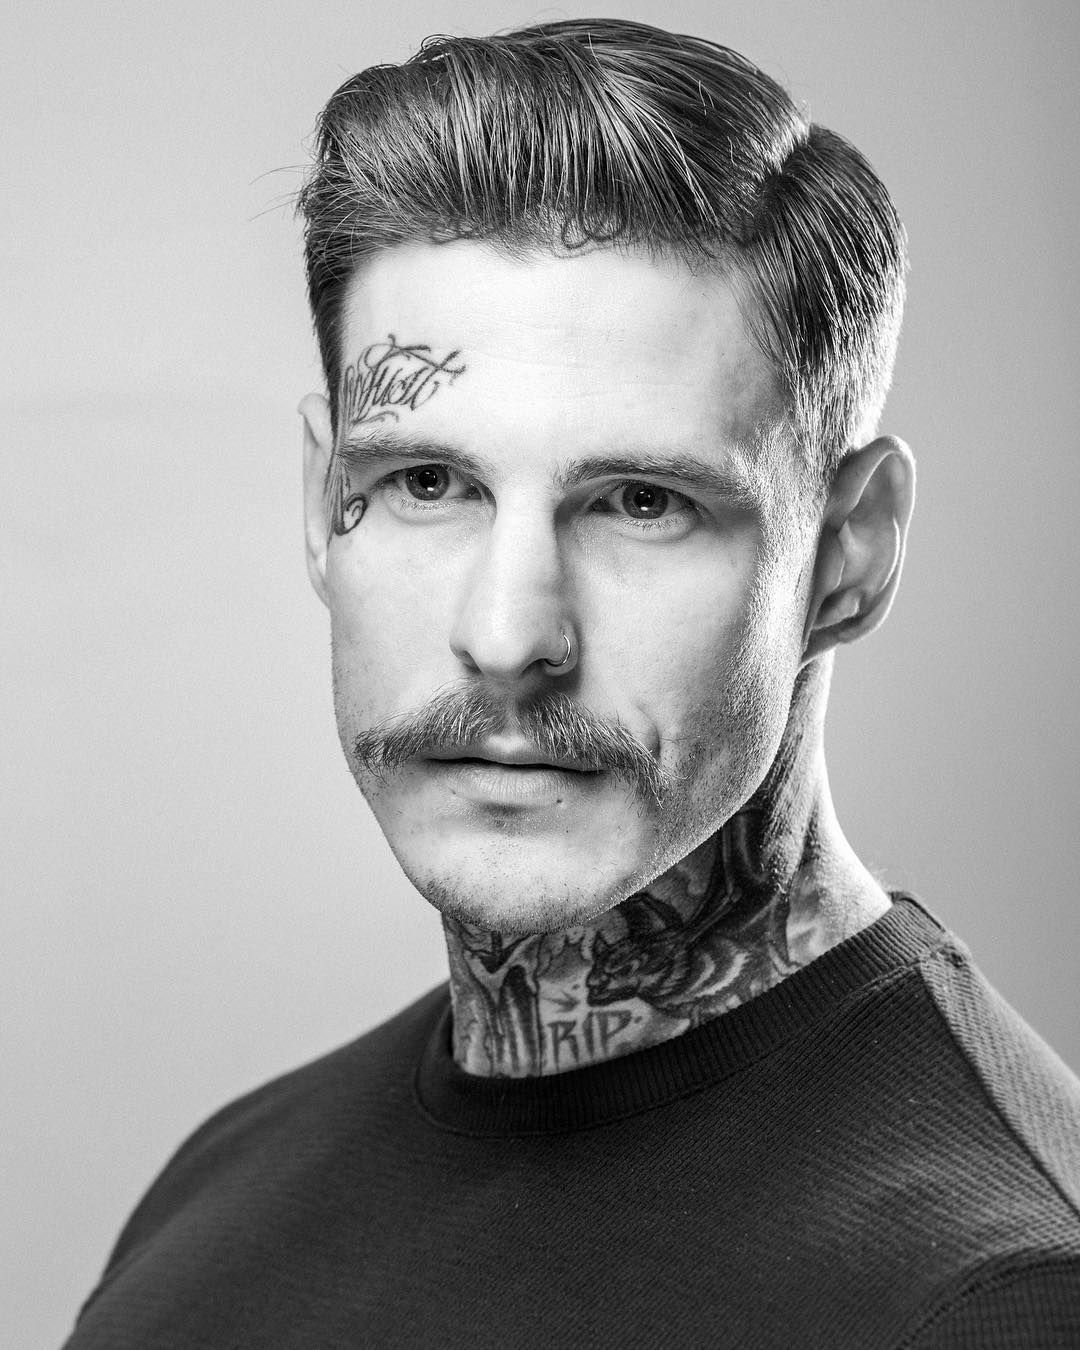 Fade haircut styles for white men  best mediumlength hairstyles for men in   tattoos